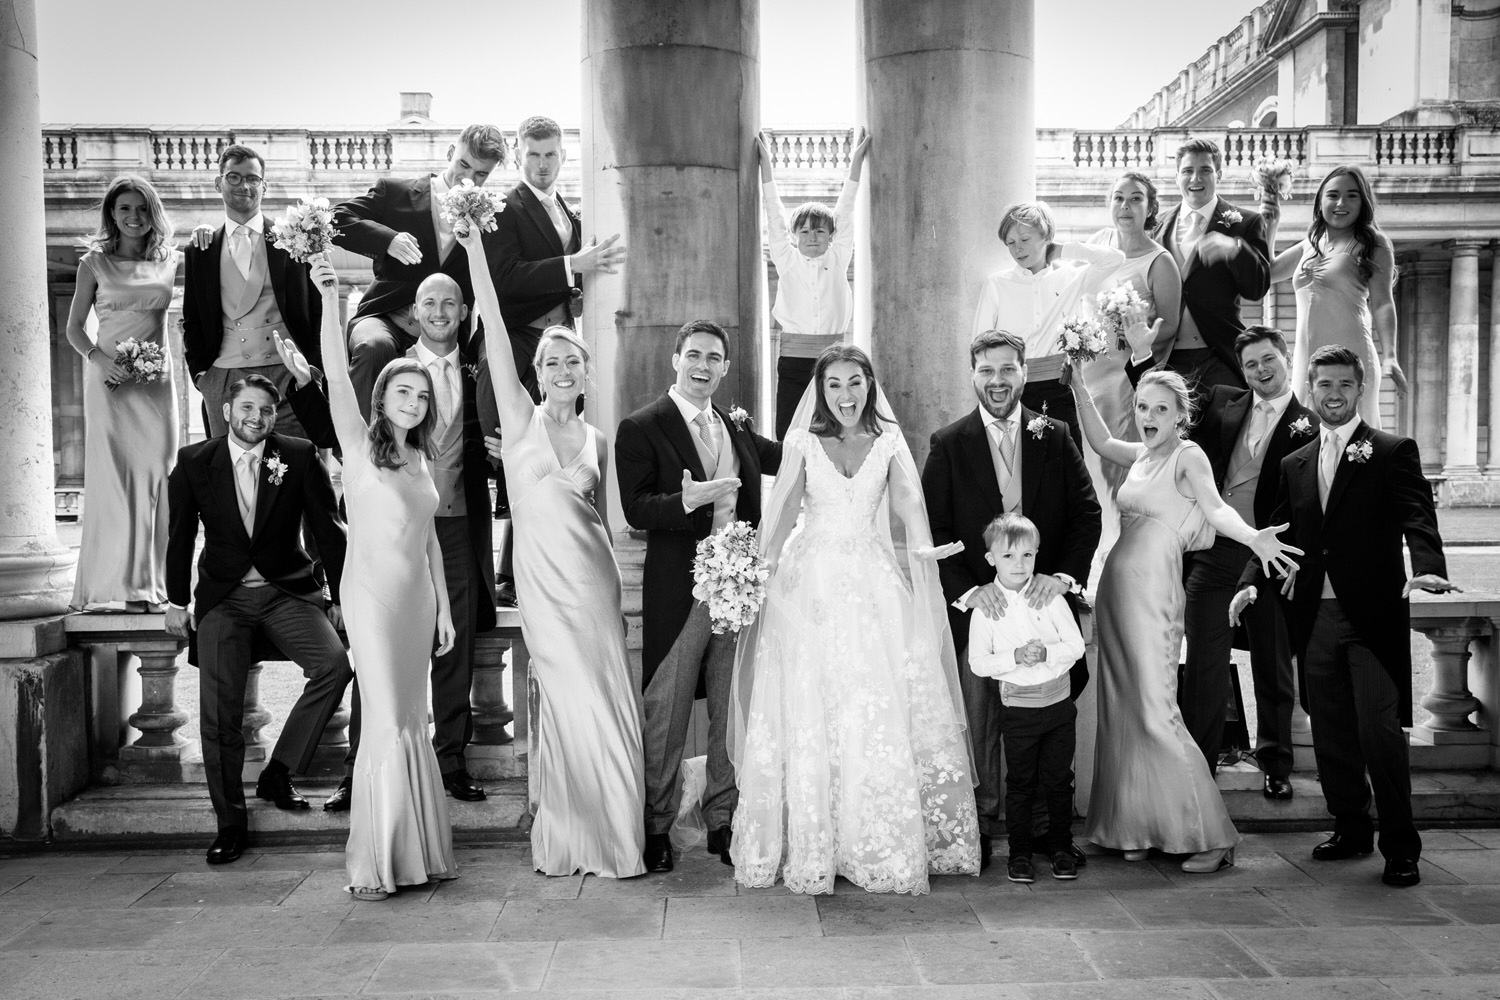 Littleton-Rose-Natural-History-Museum-London-Wedding-Planners-Bridal-Party.jpg